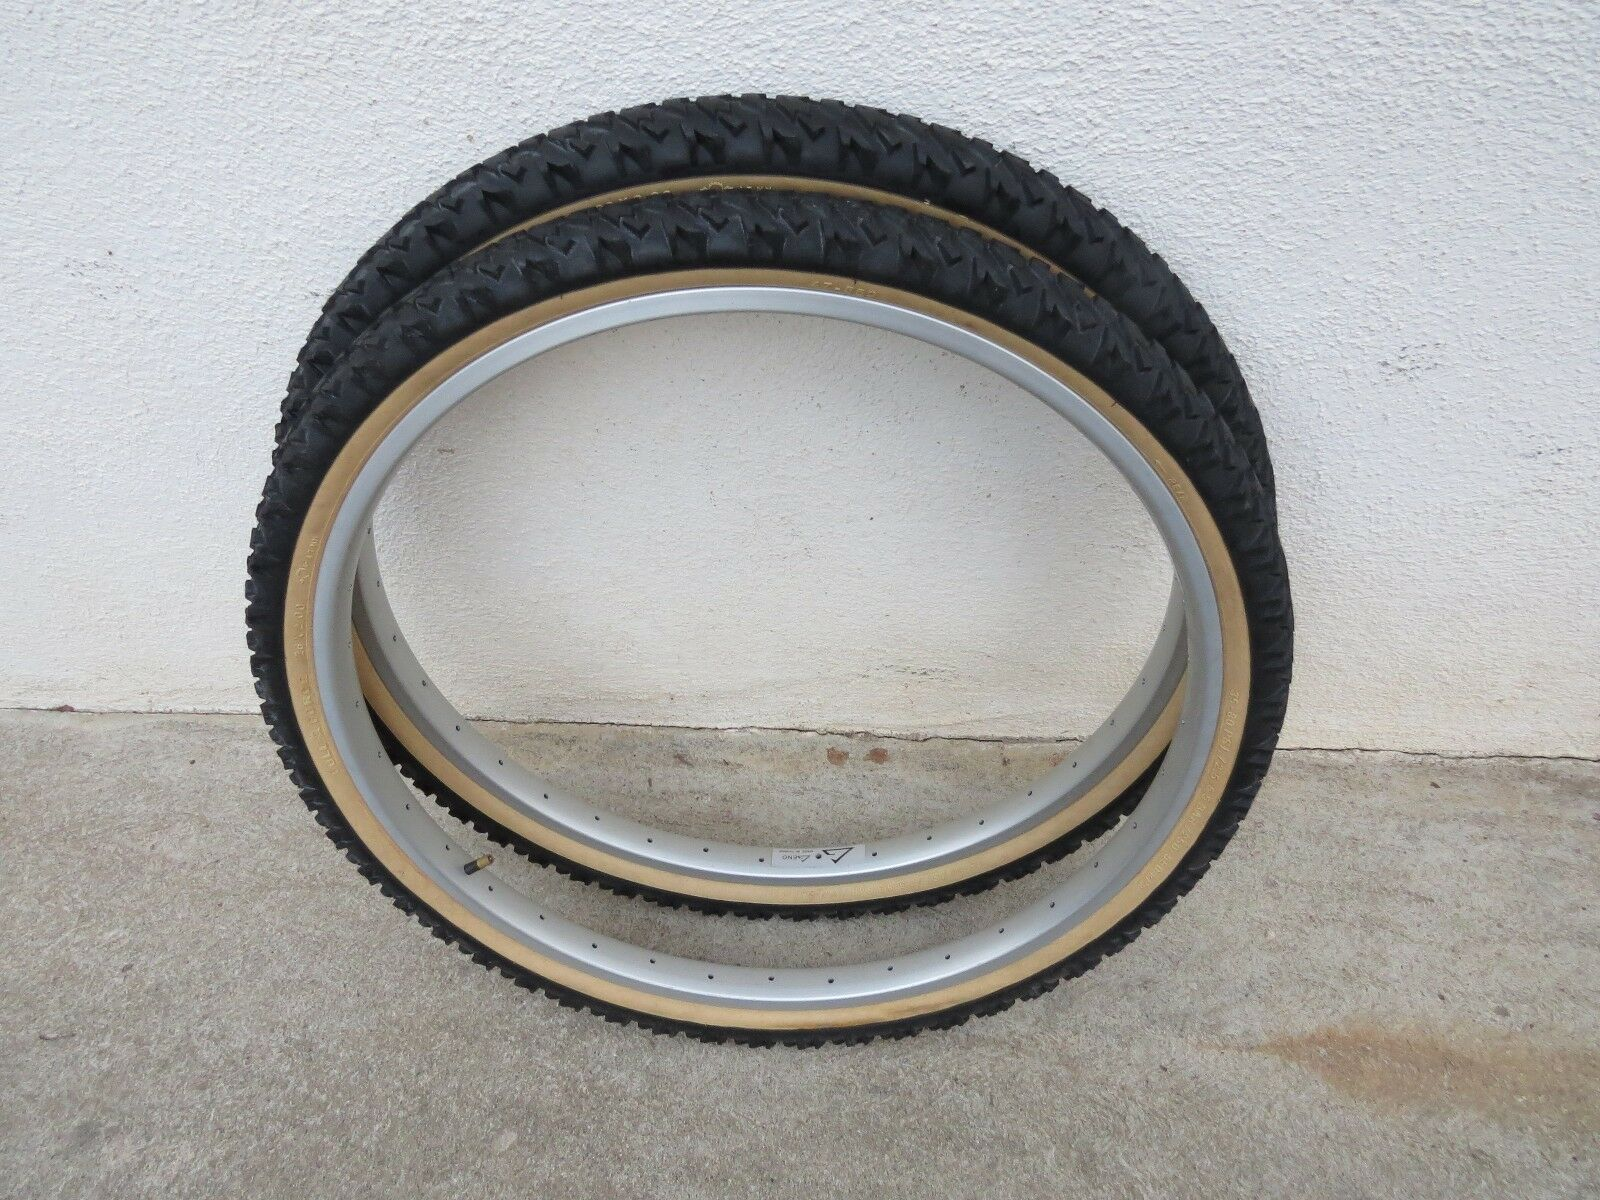 FULL FORCE 26 X  2.00 MOUNTAIN BIKE TIRES VINTAGE NOS SKIN WALL CROSS COUNTRY  incredible discounts